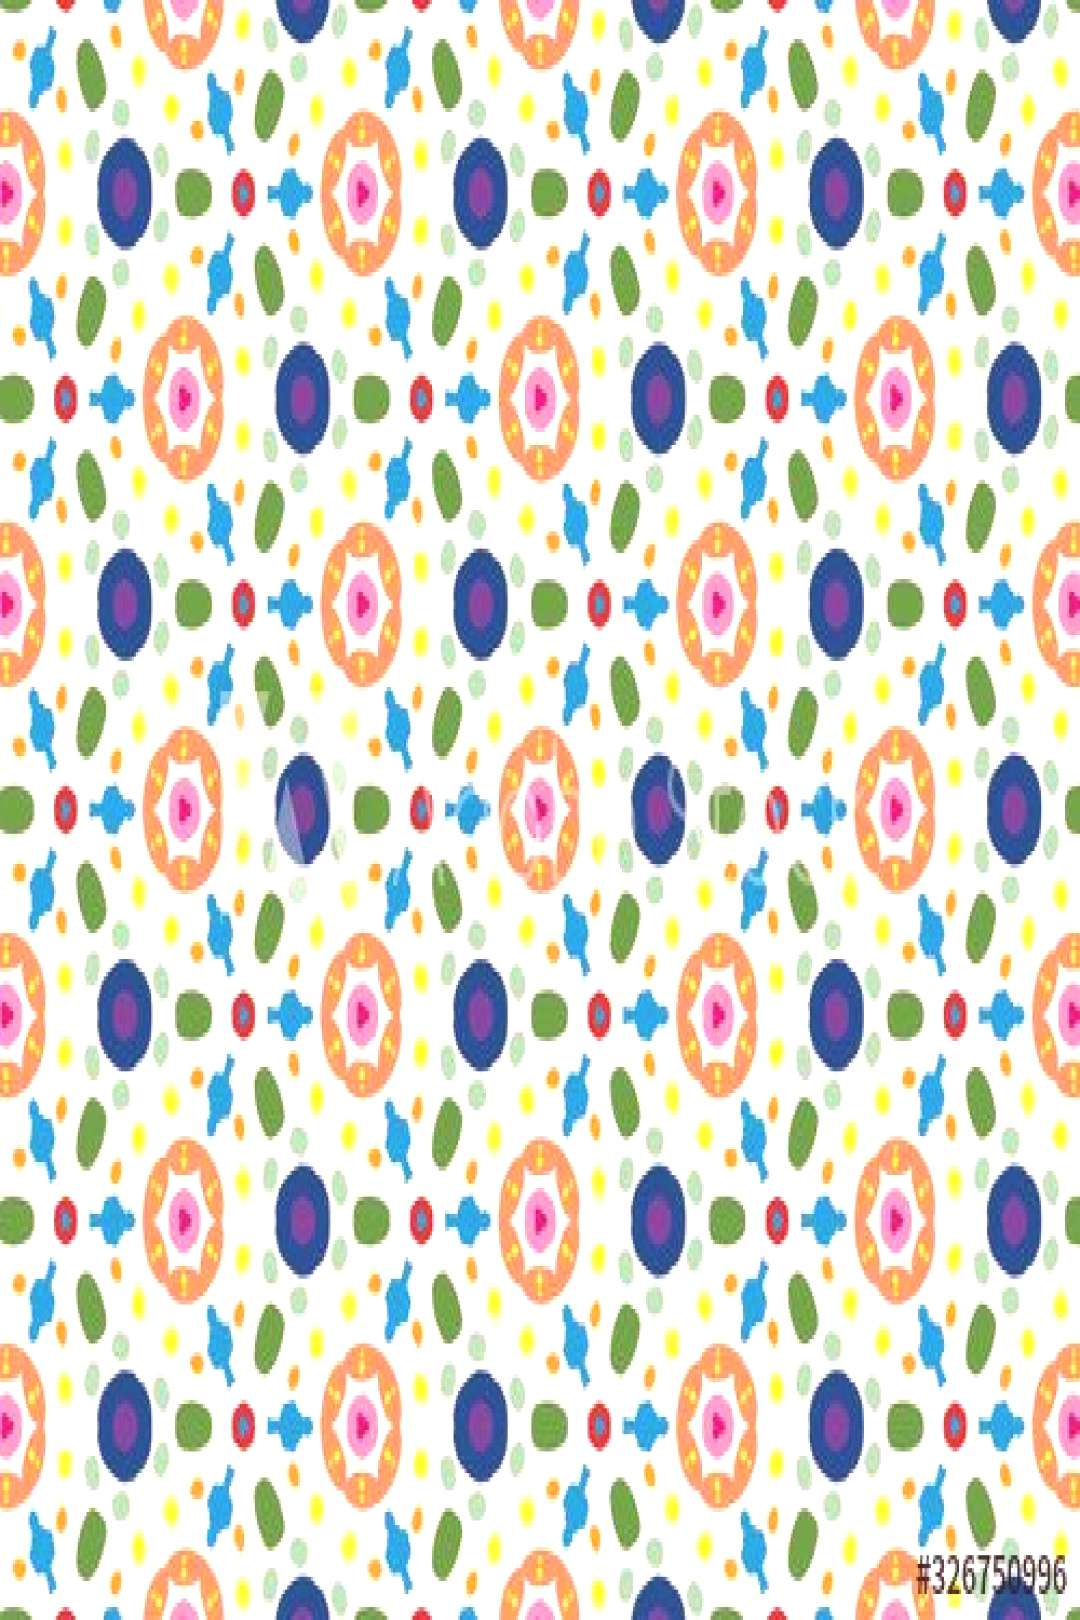 seamless pattern with circles and other shapes ,